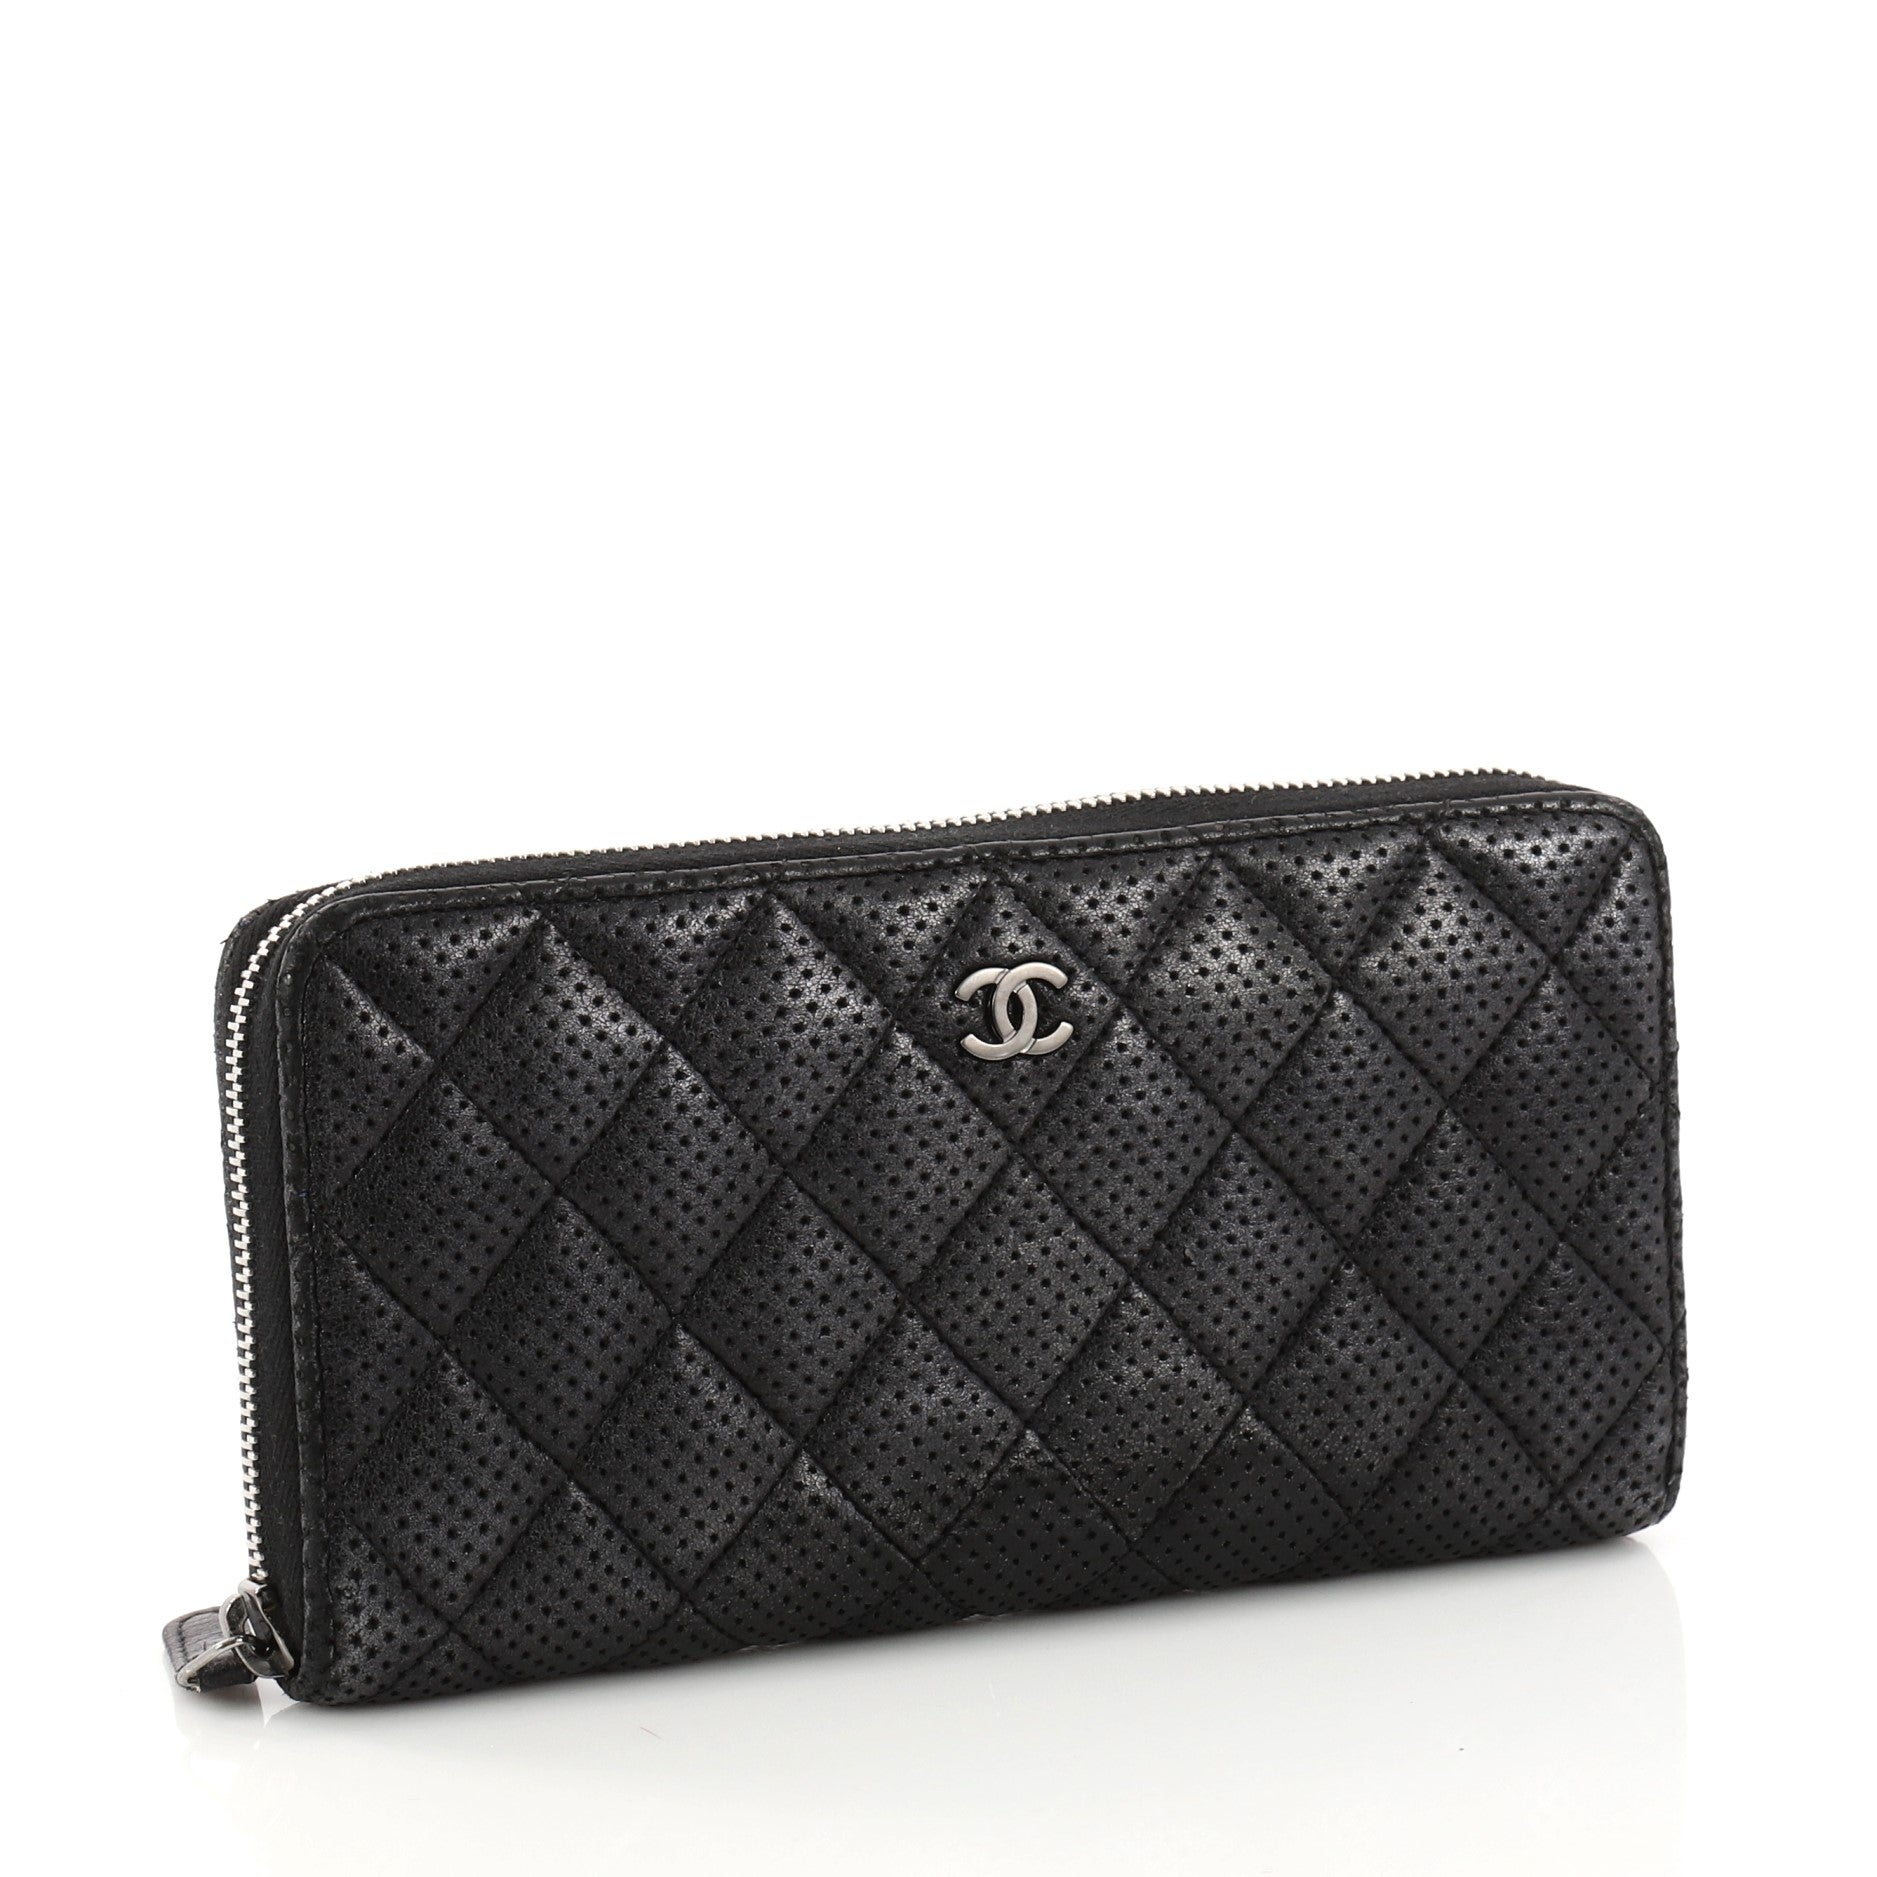 043ff3283cf4b7 Chanel Zip Around Wallet Quilted Perforated Leather Long At 1stdibs. Chanel  Boy Quilted Medium Zip Around Wallet Black